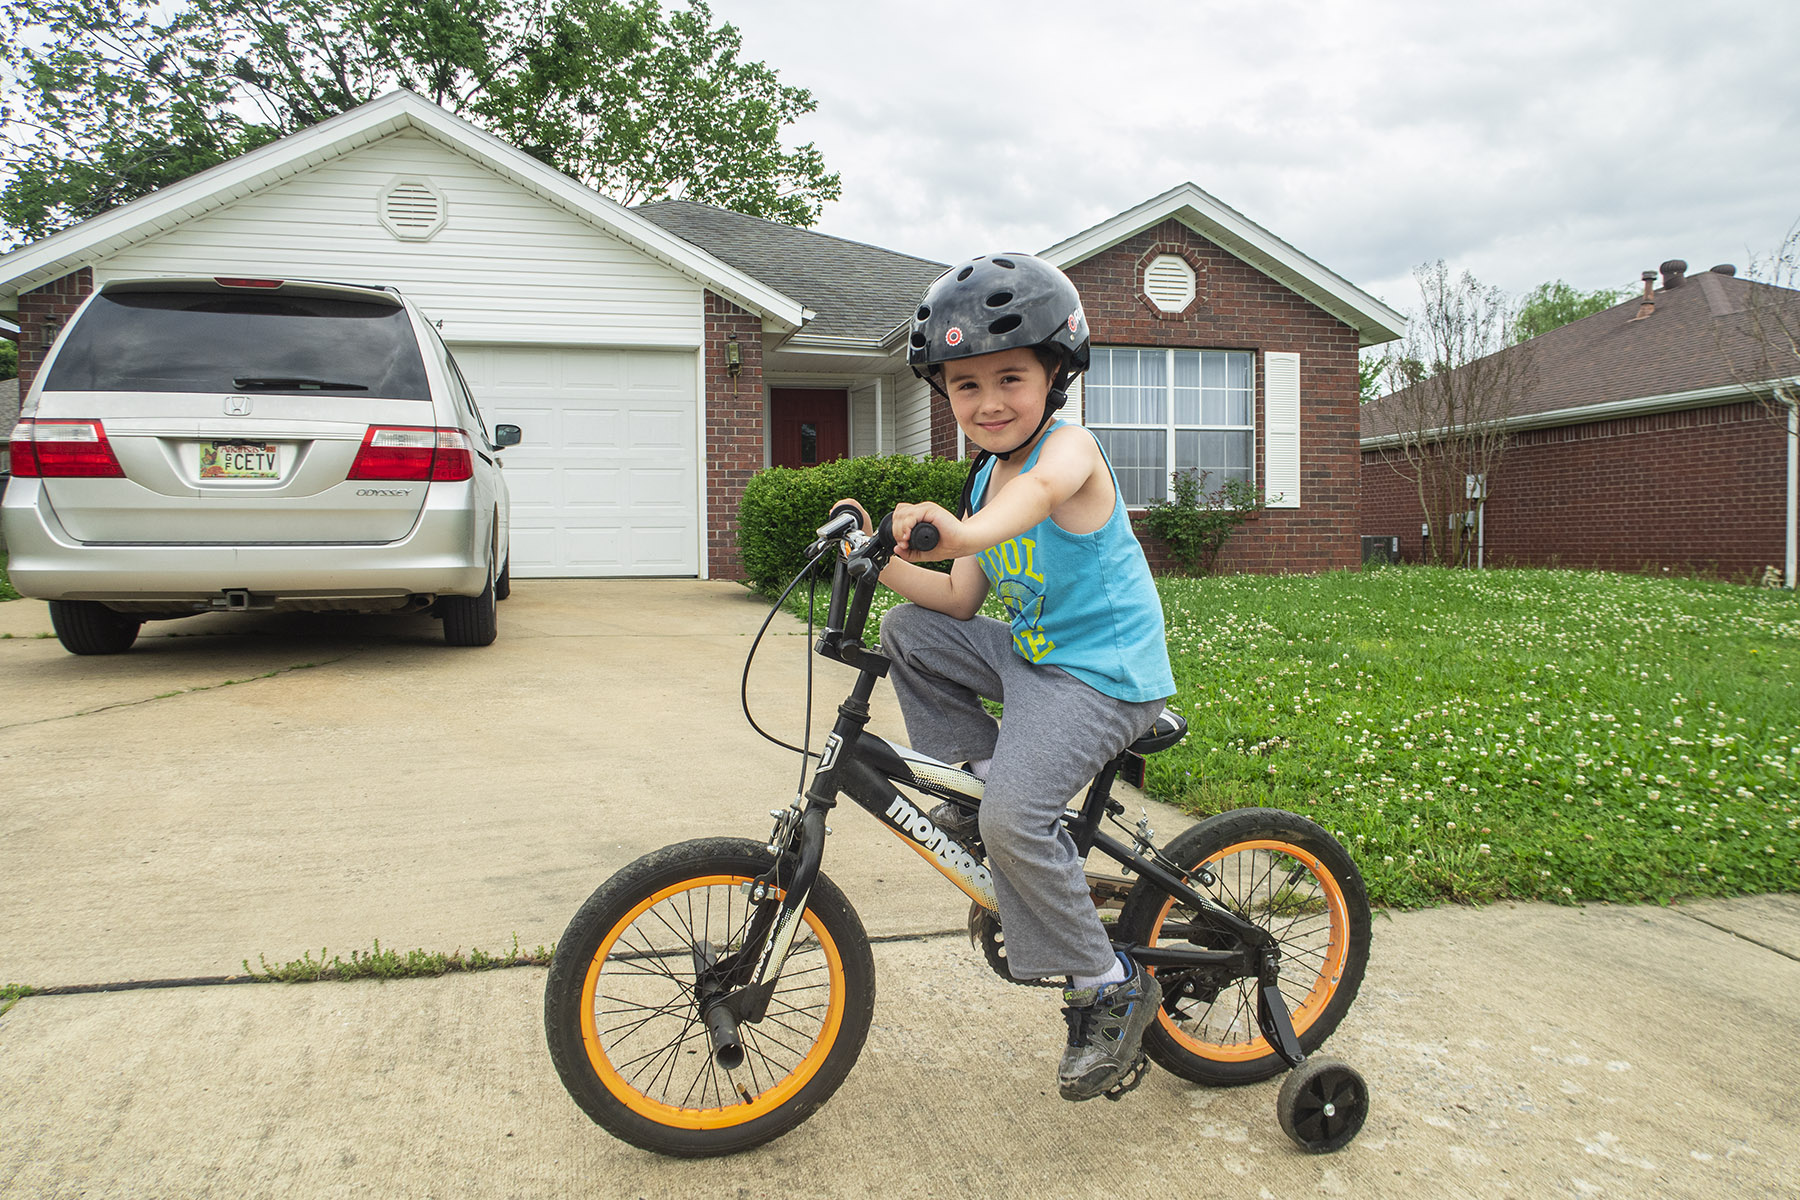 David learning to ride a bike at our house in Fayetteville